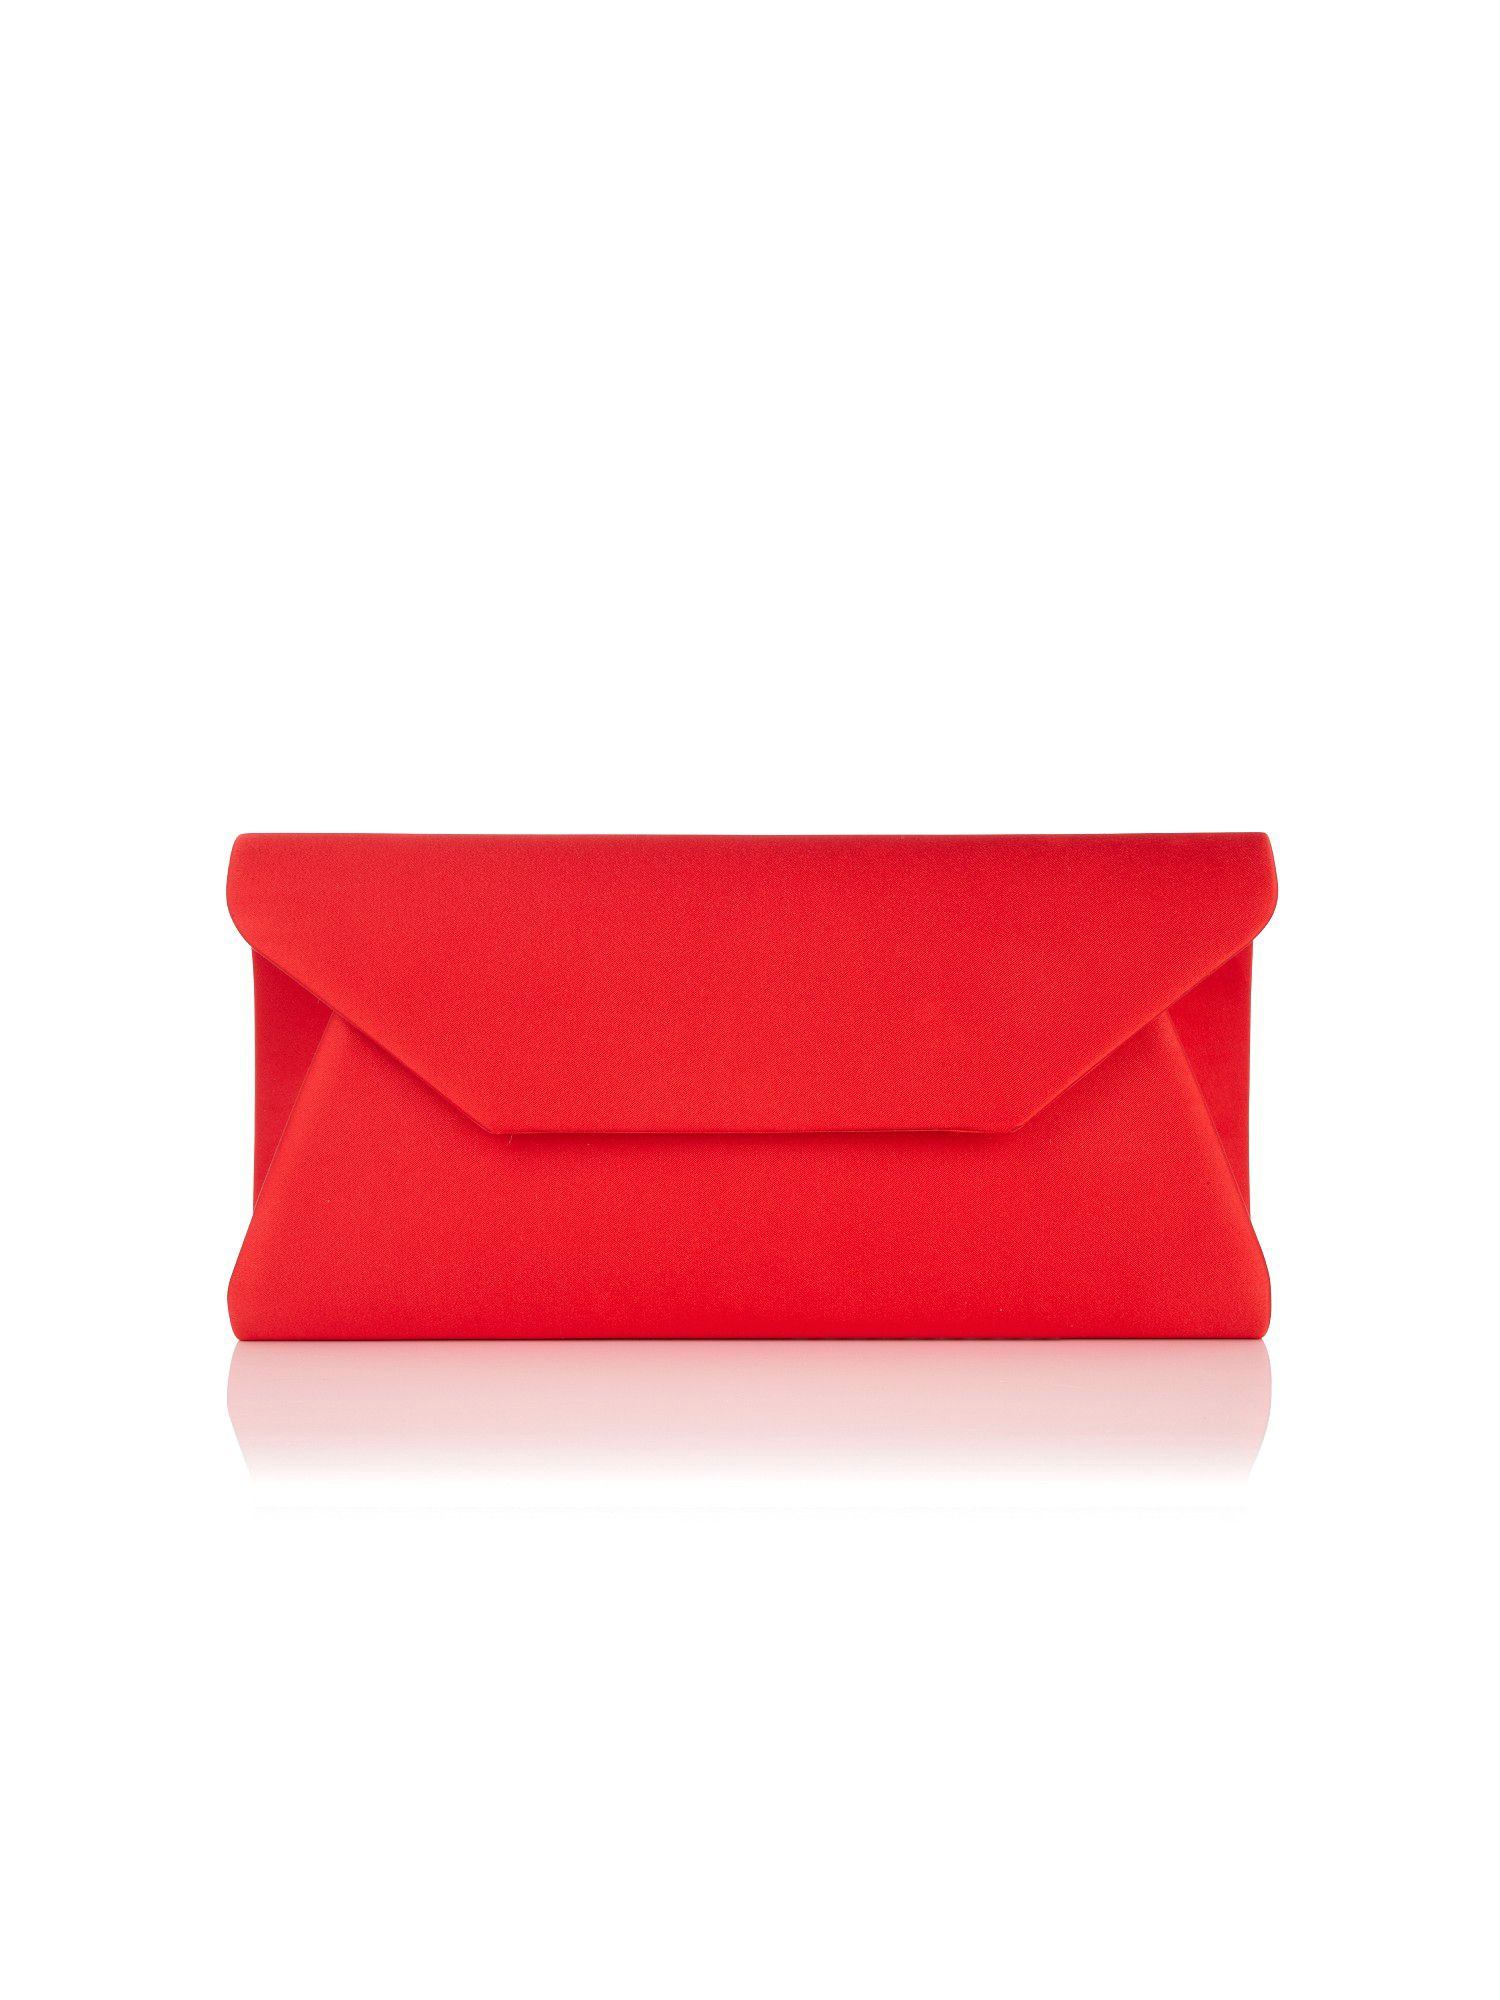 Find great deals on eBay for red envelope bag. Shop with confidence.